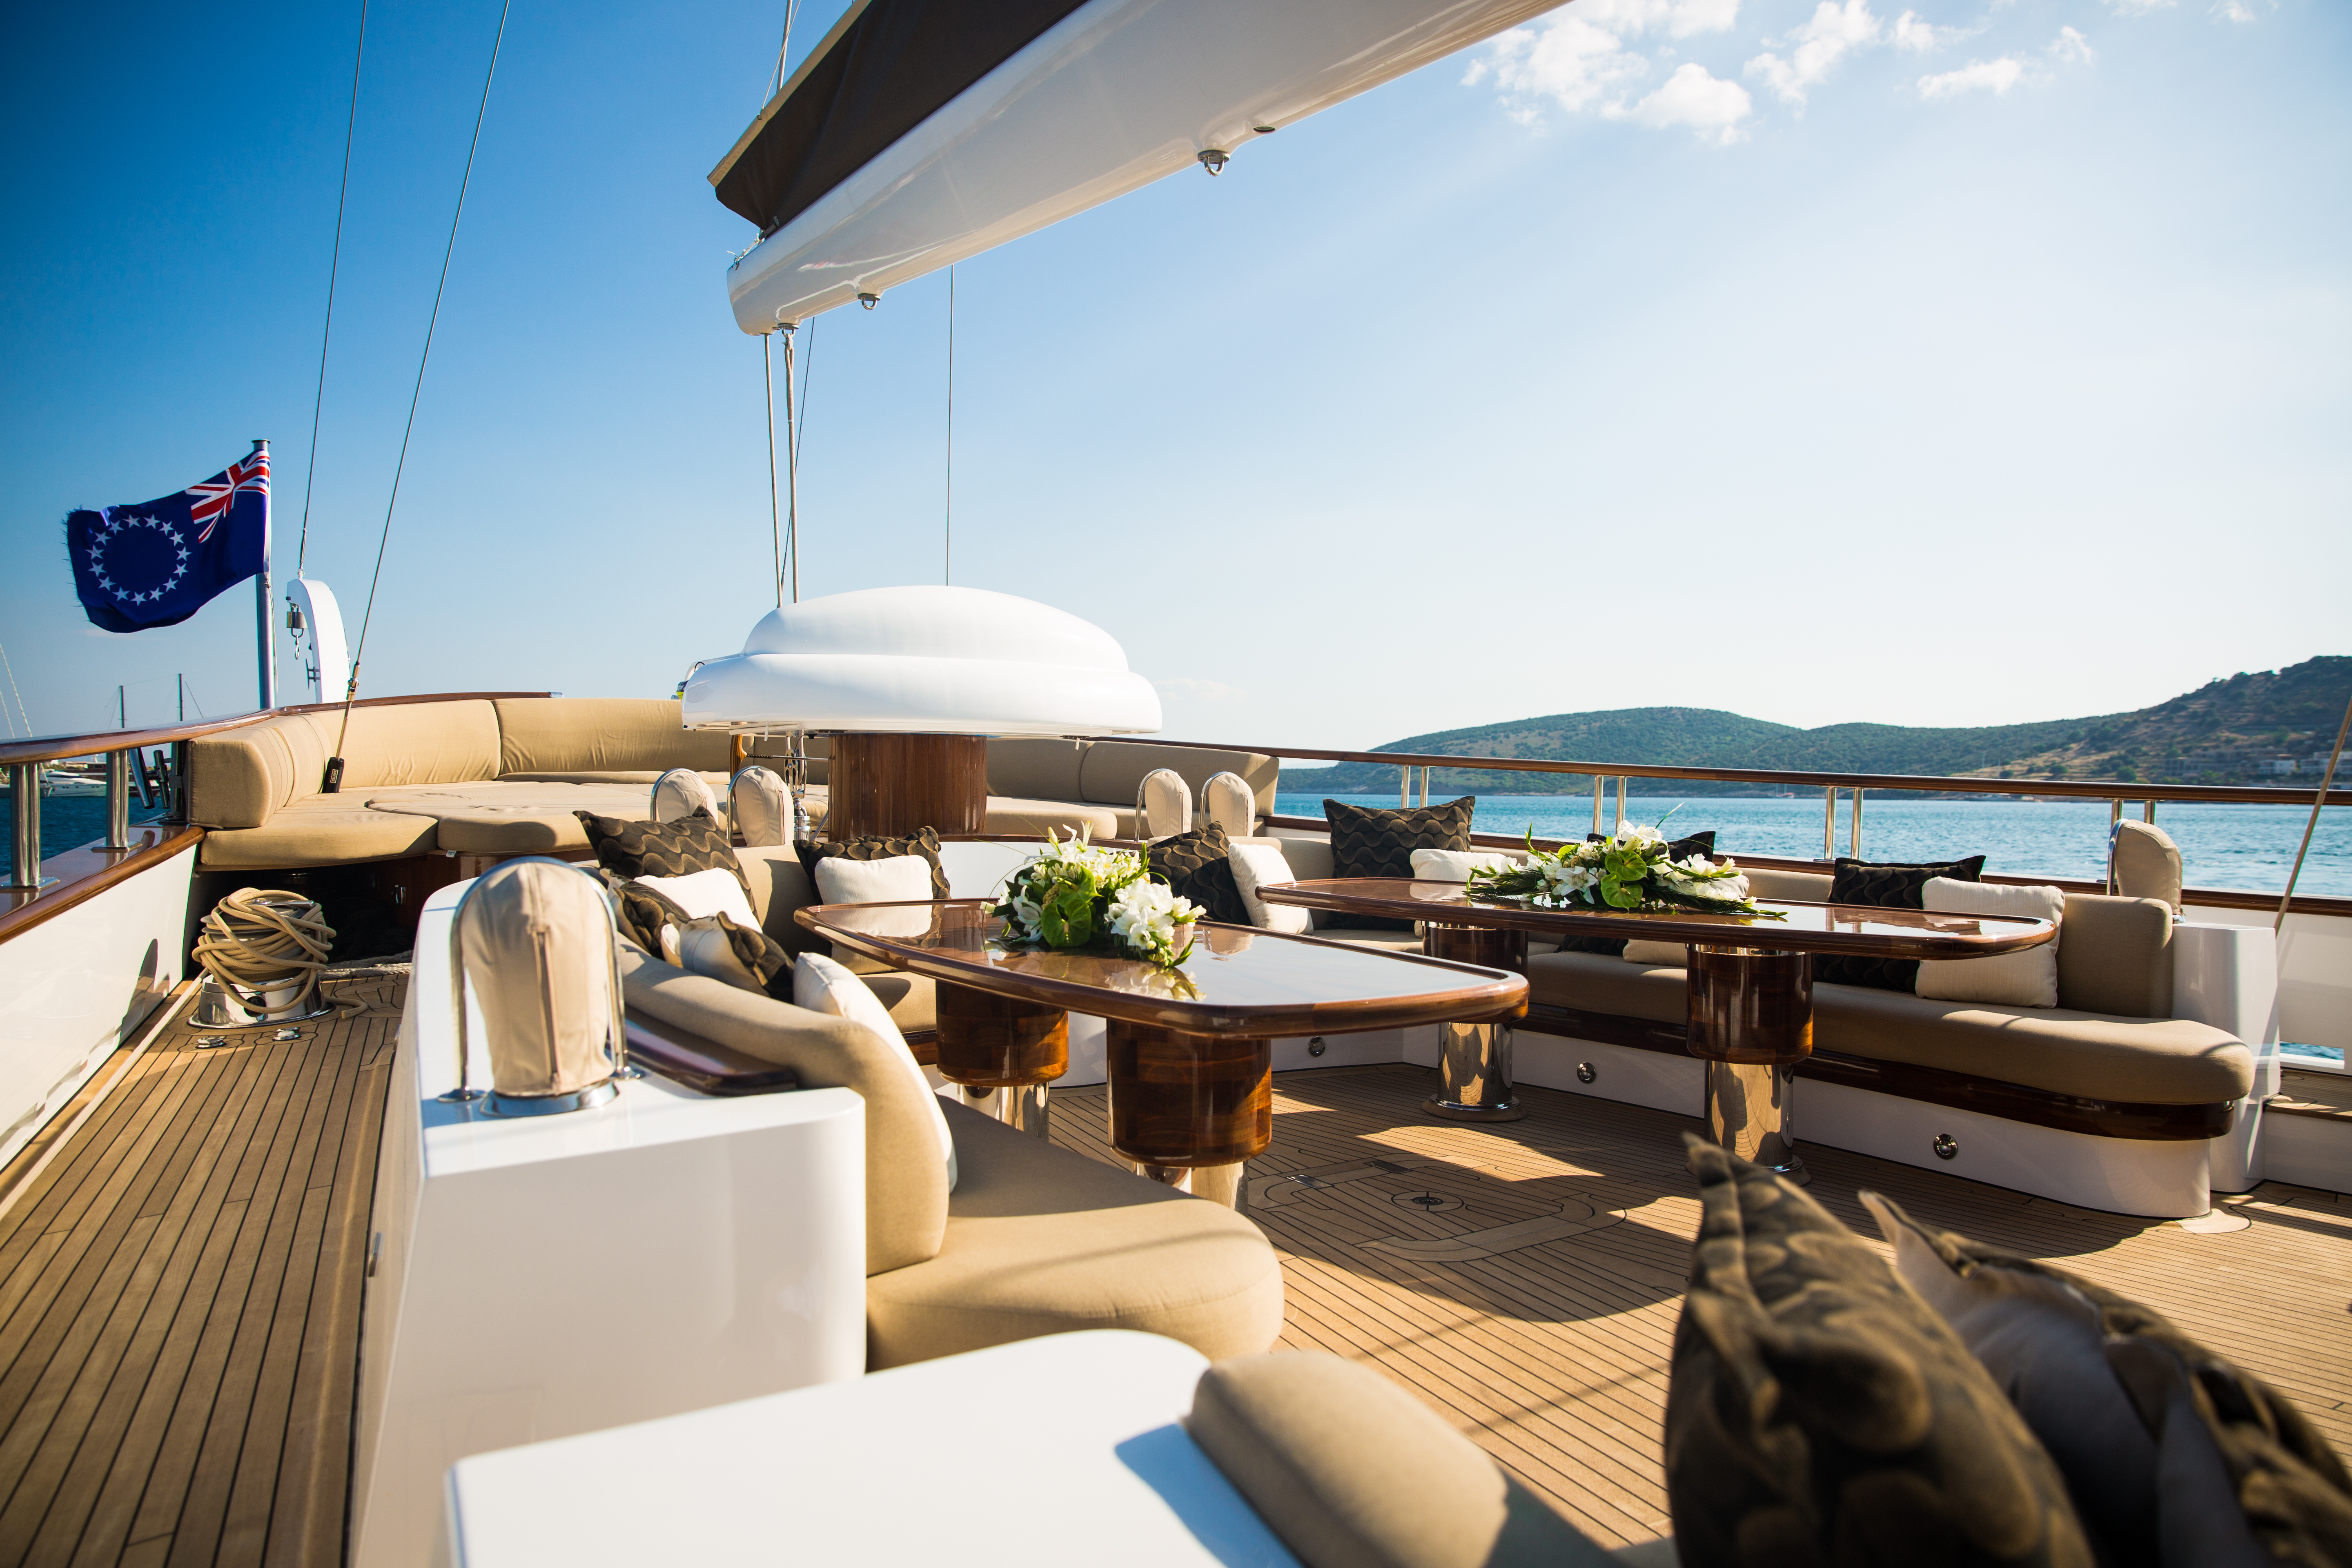 Aft Deck Social Areas